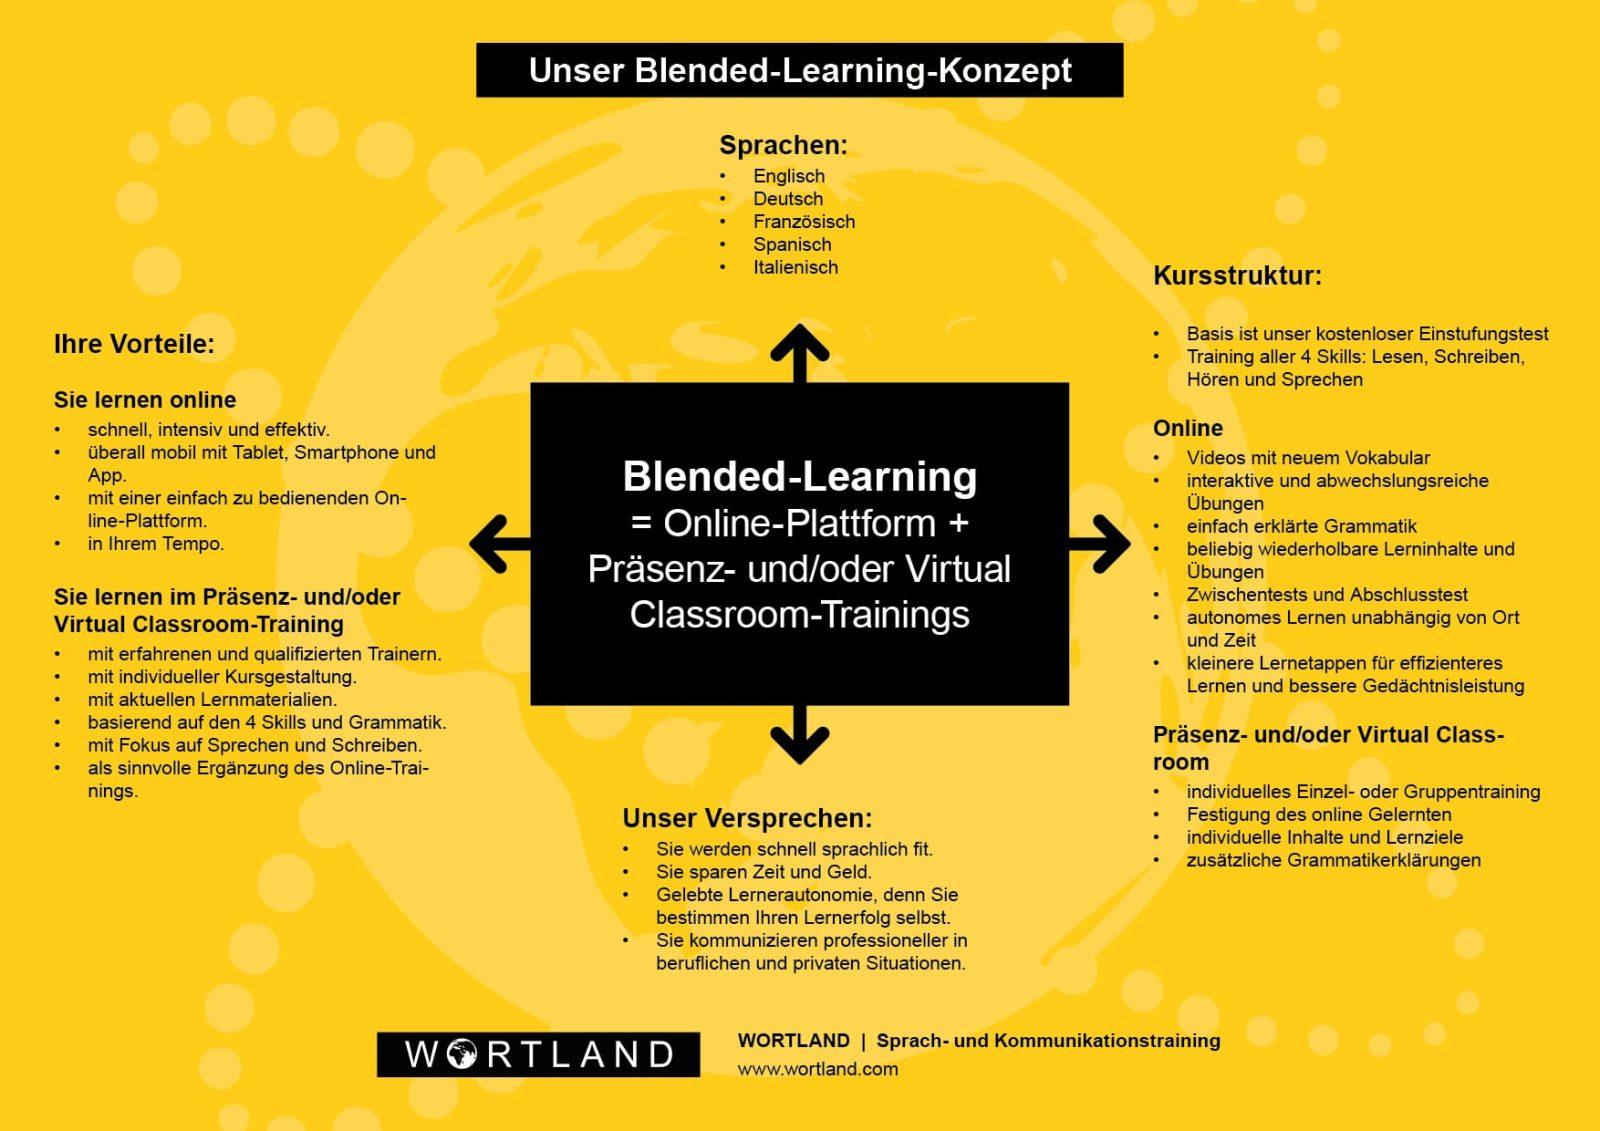 Blended Learning bei WORTLAND Sprachtraining und Kommunikationstraining